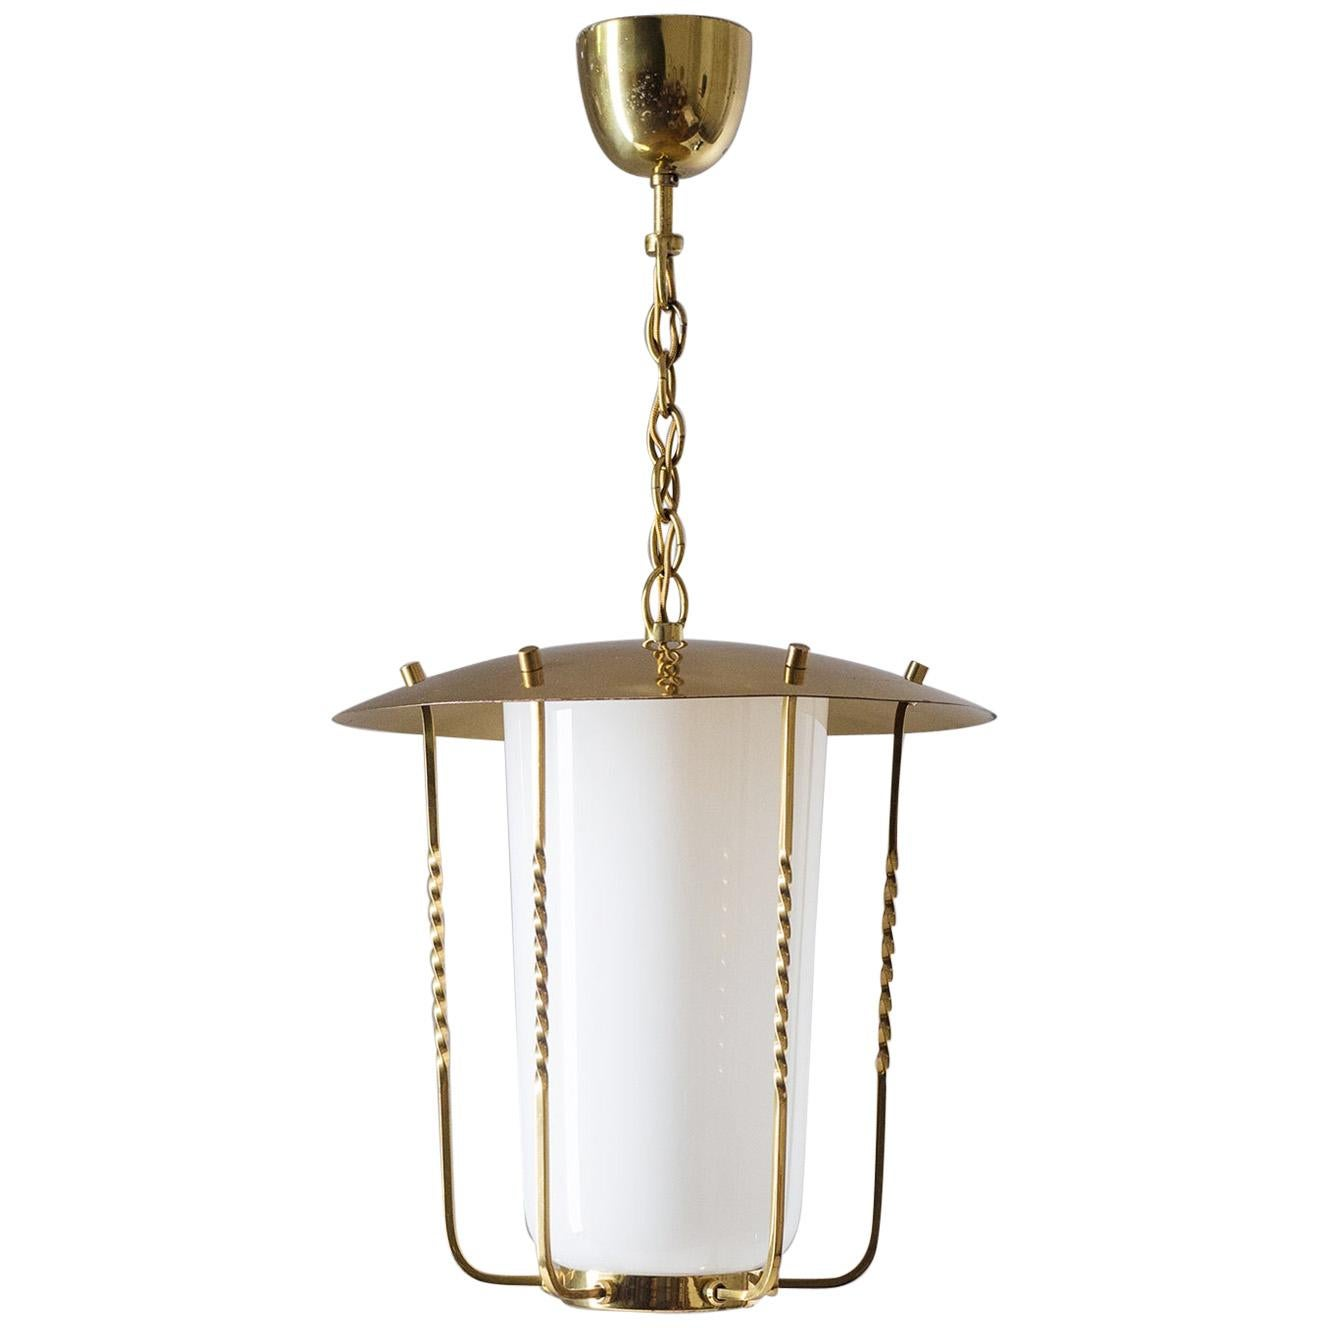 Austrian Brass and Glass Lantern, circa 1950